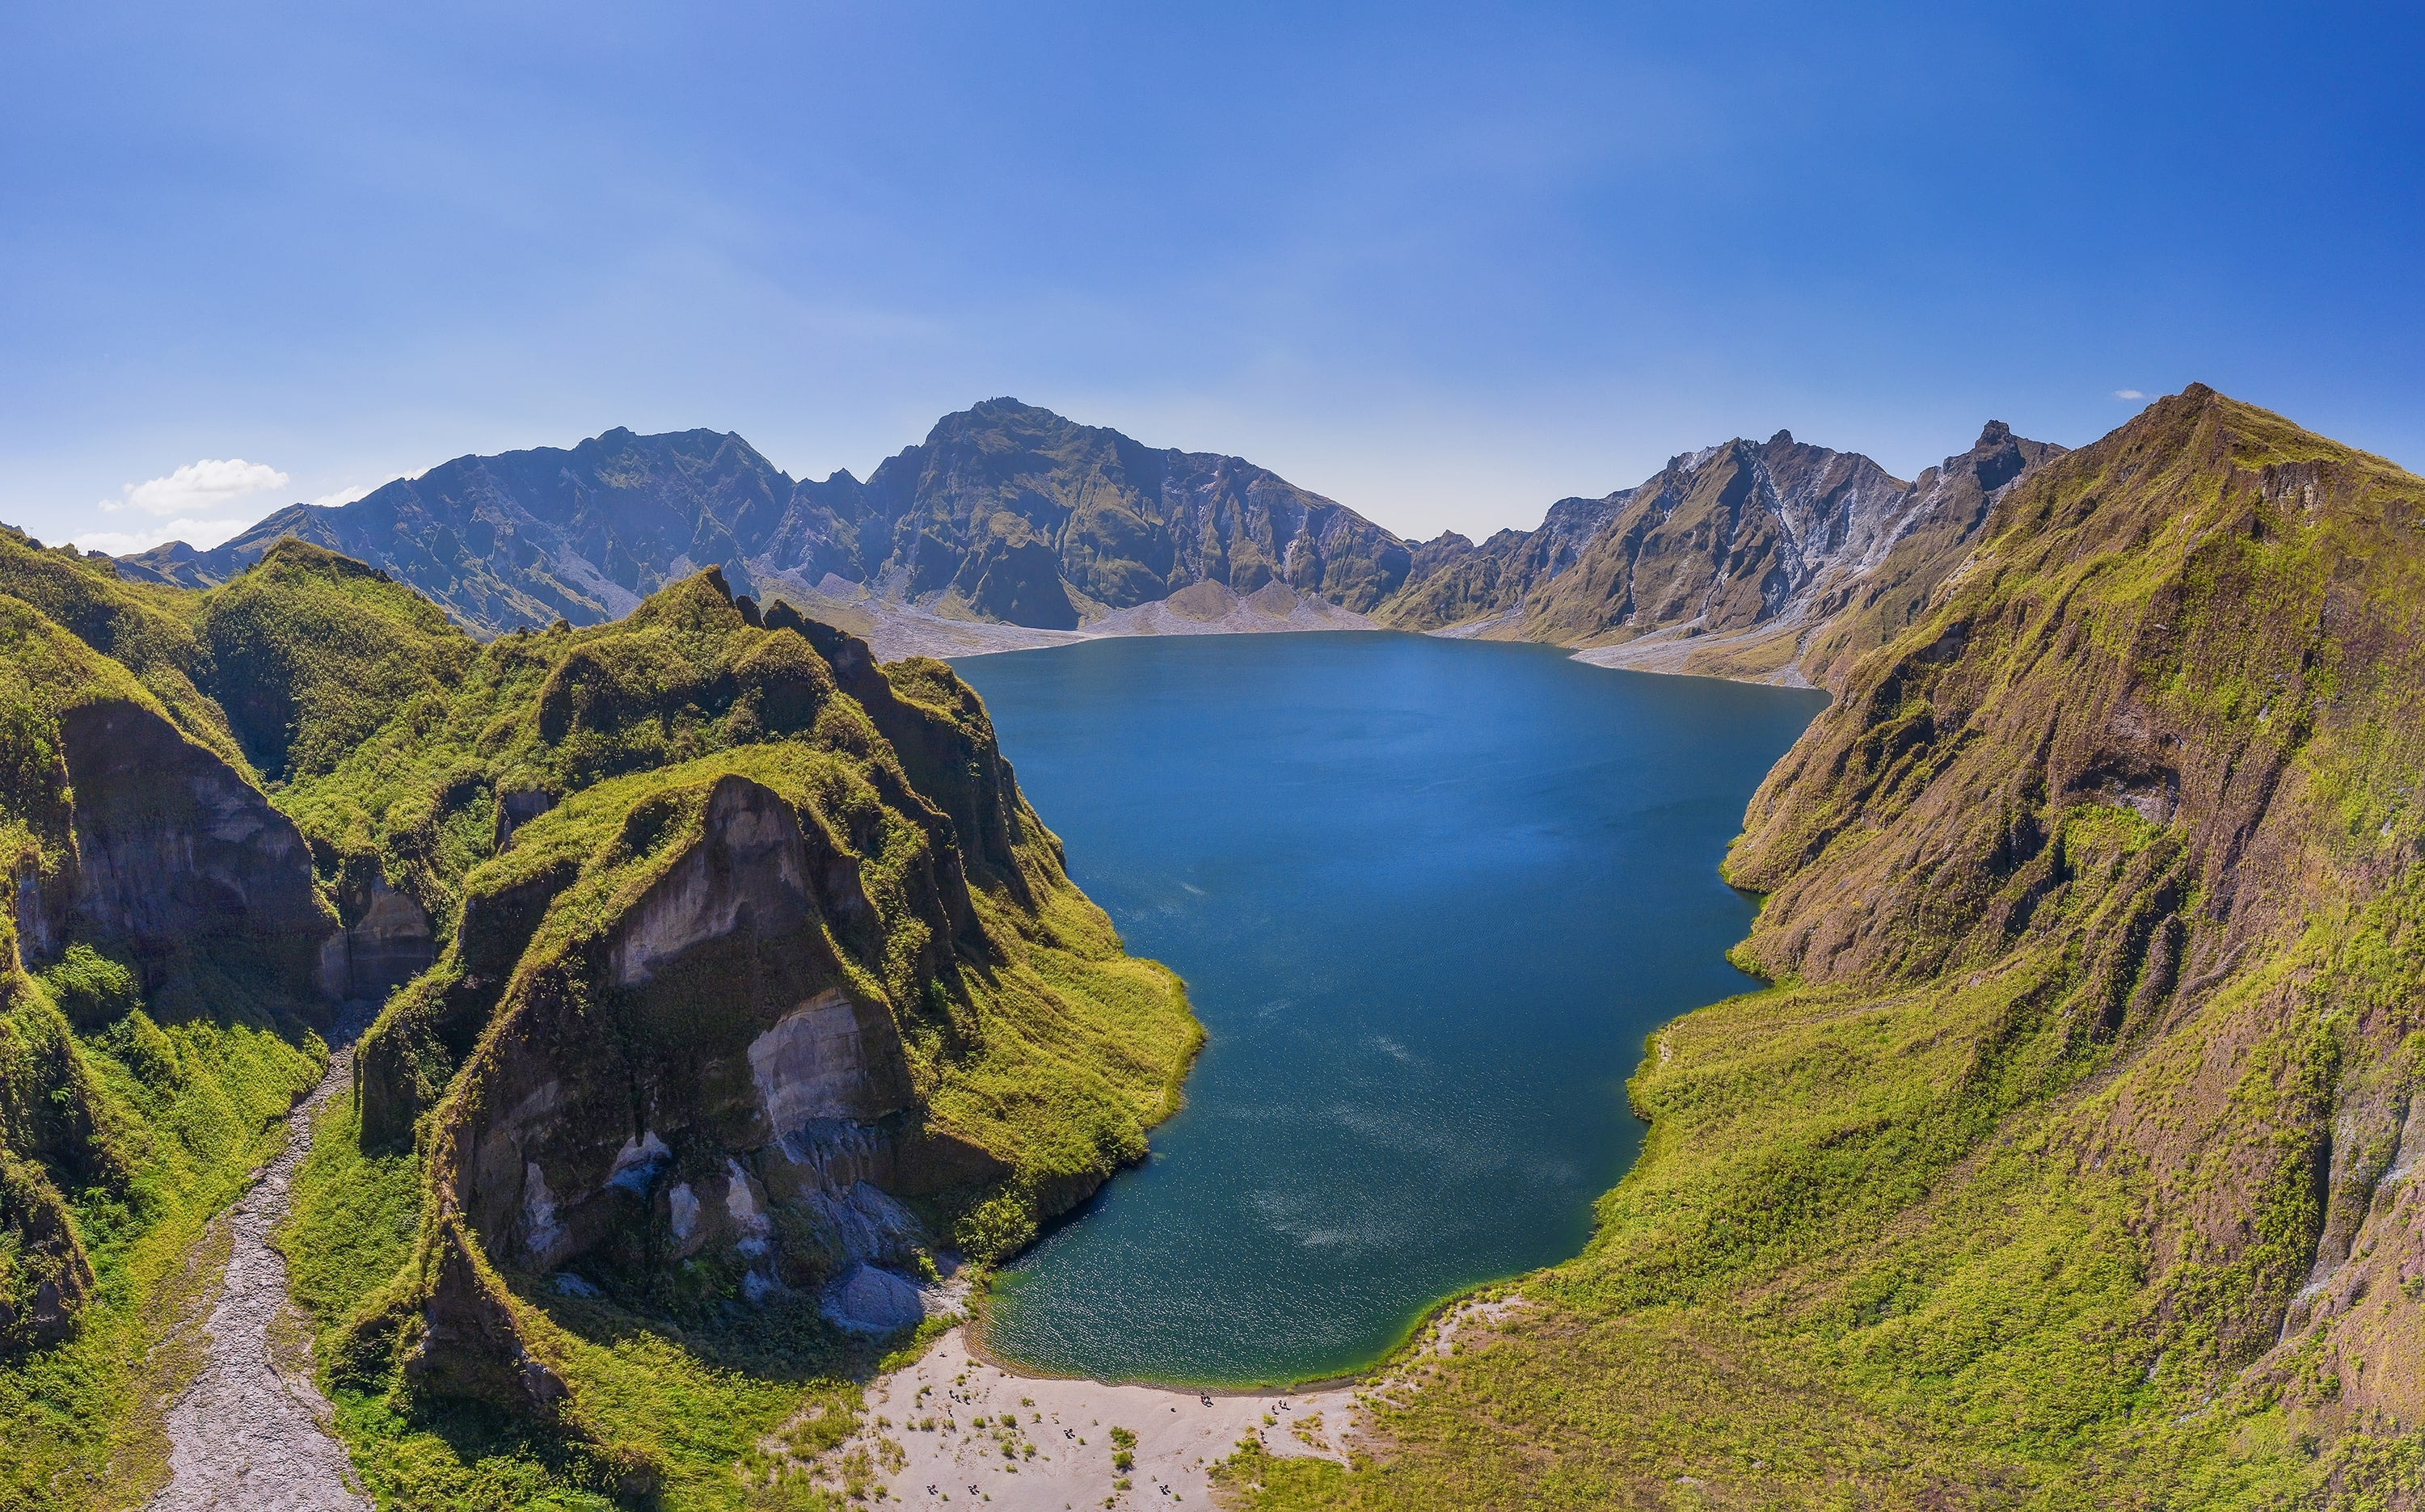 Mt. Pinatubo Crater Lake is one of the most popular Philippines' tourist spots